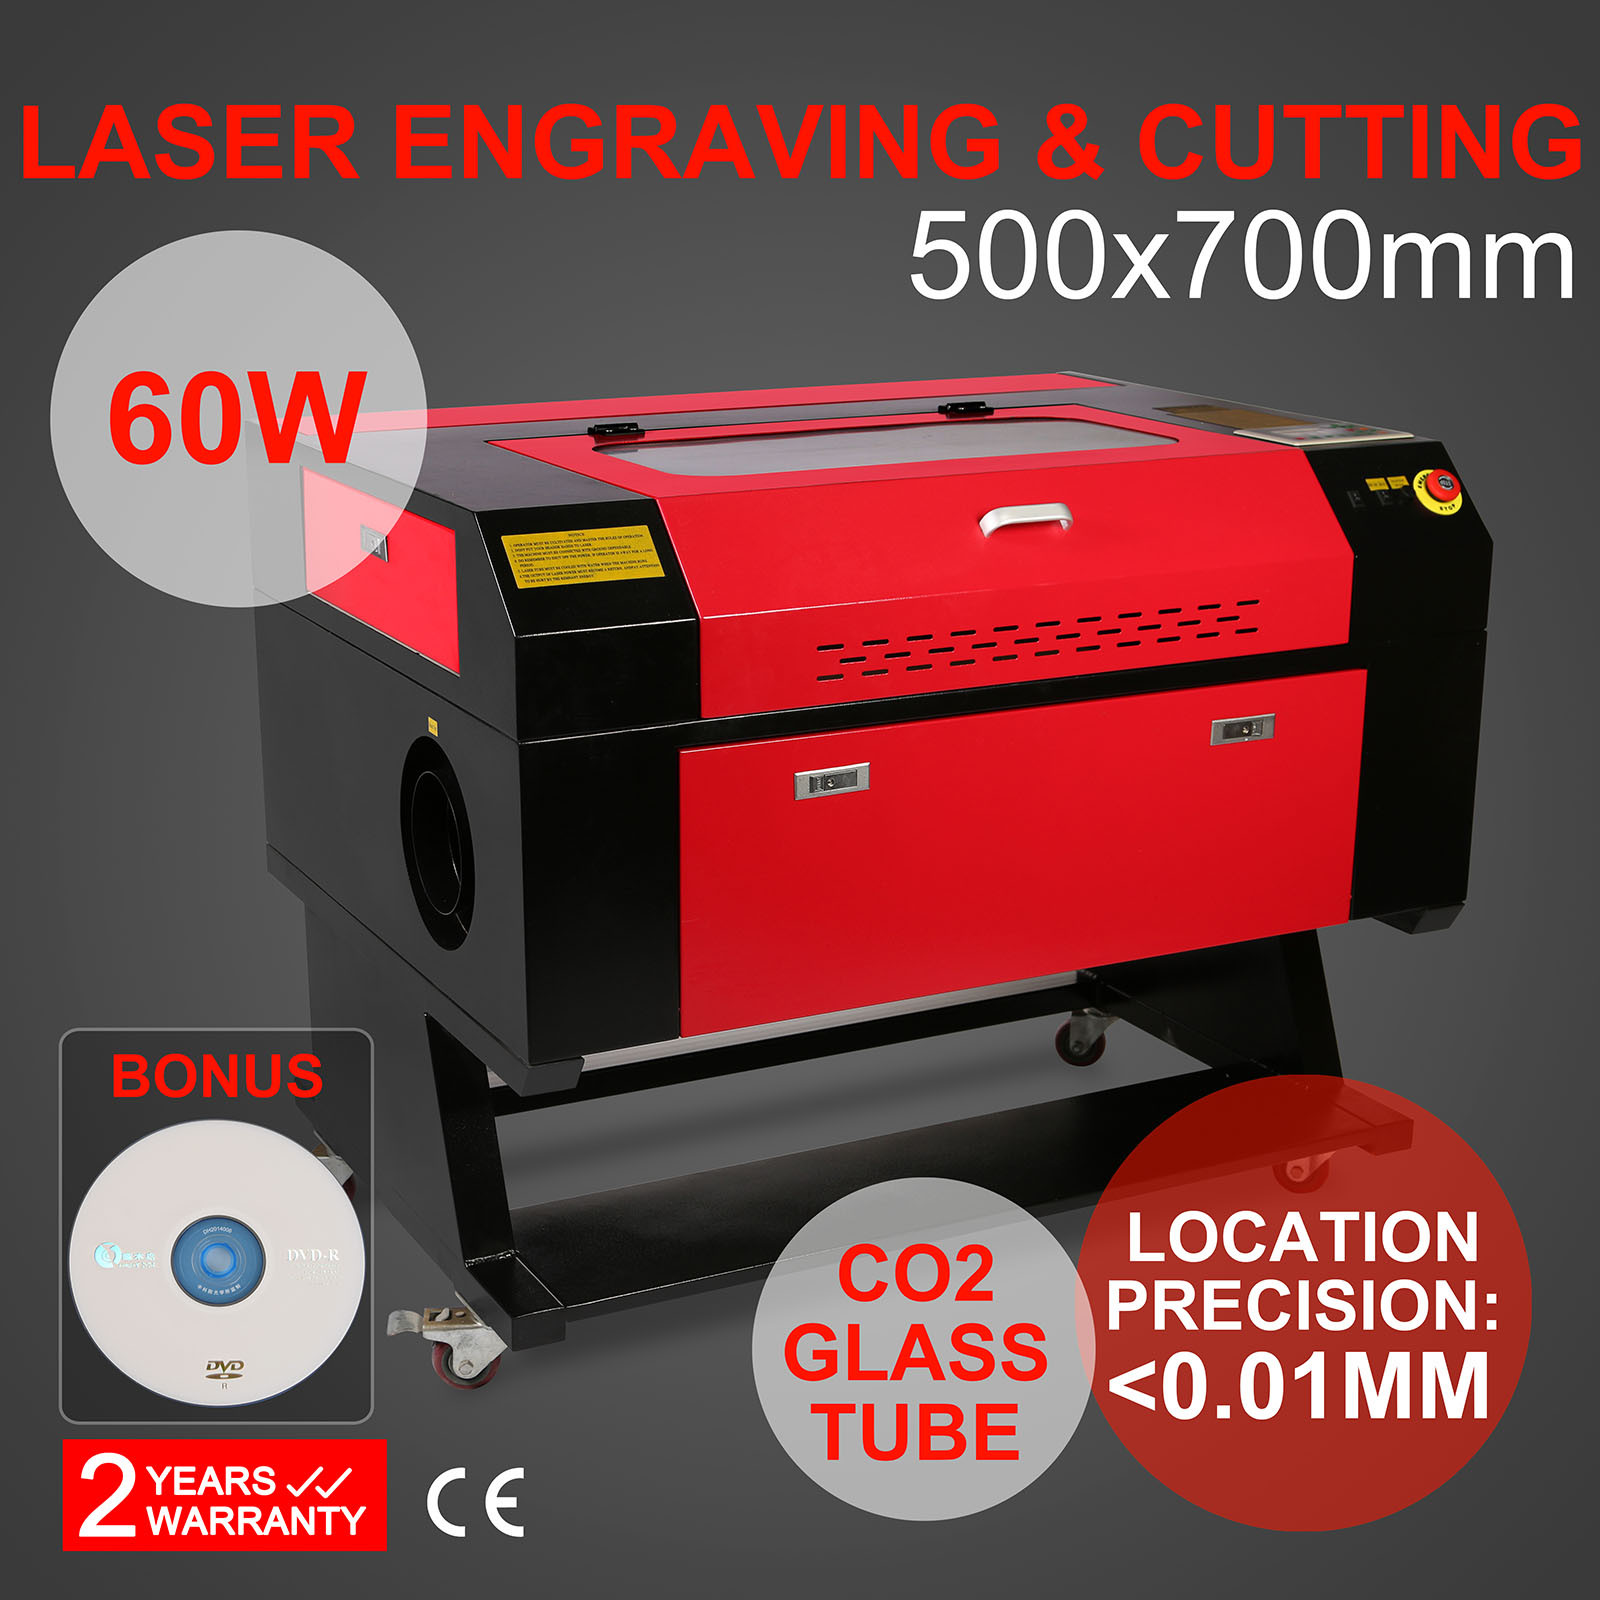 CO2 USB Laser 60W  Engraving Cutting Machine 700x500mm Engraver Cutter Wood Working